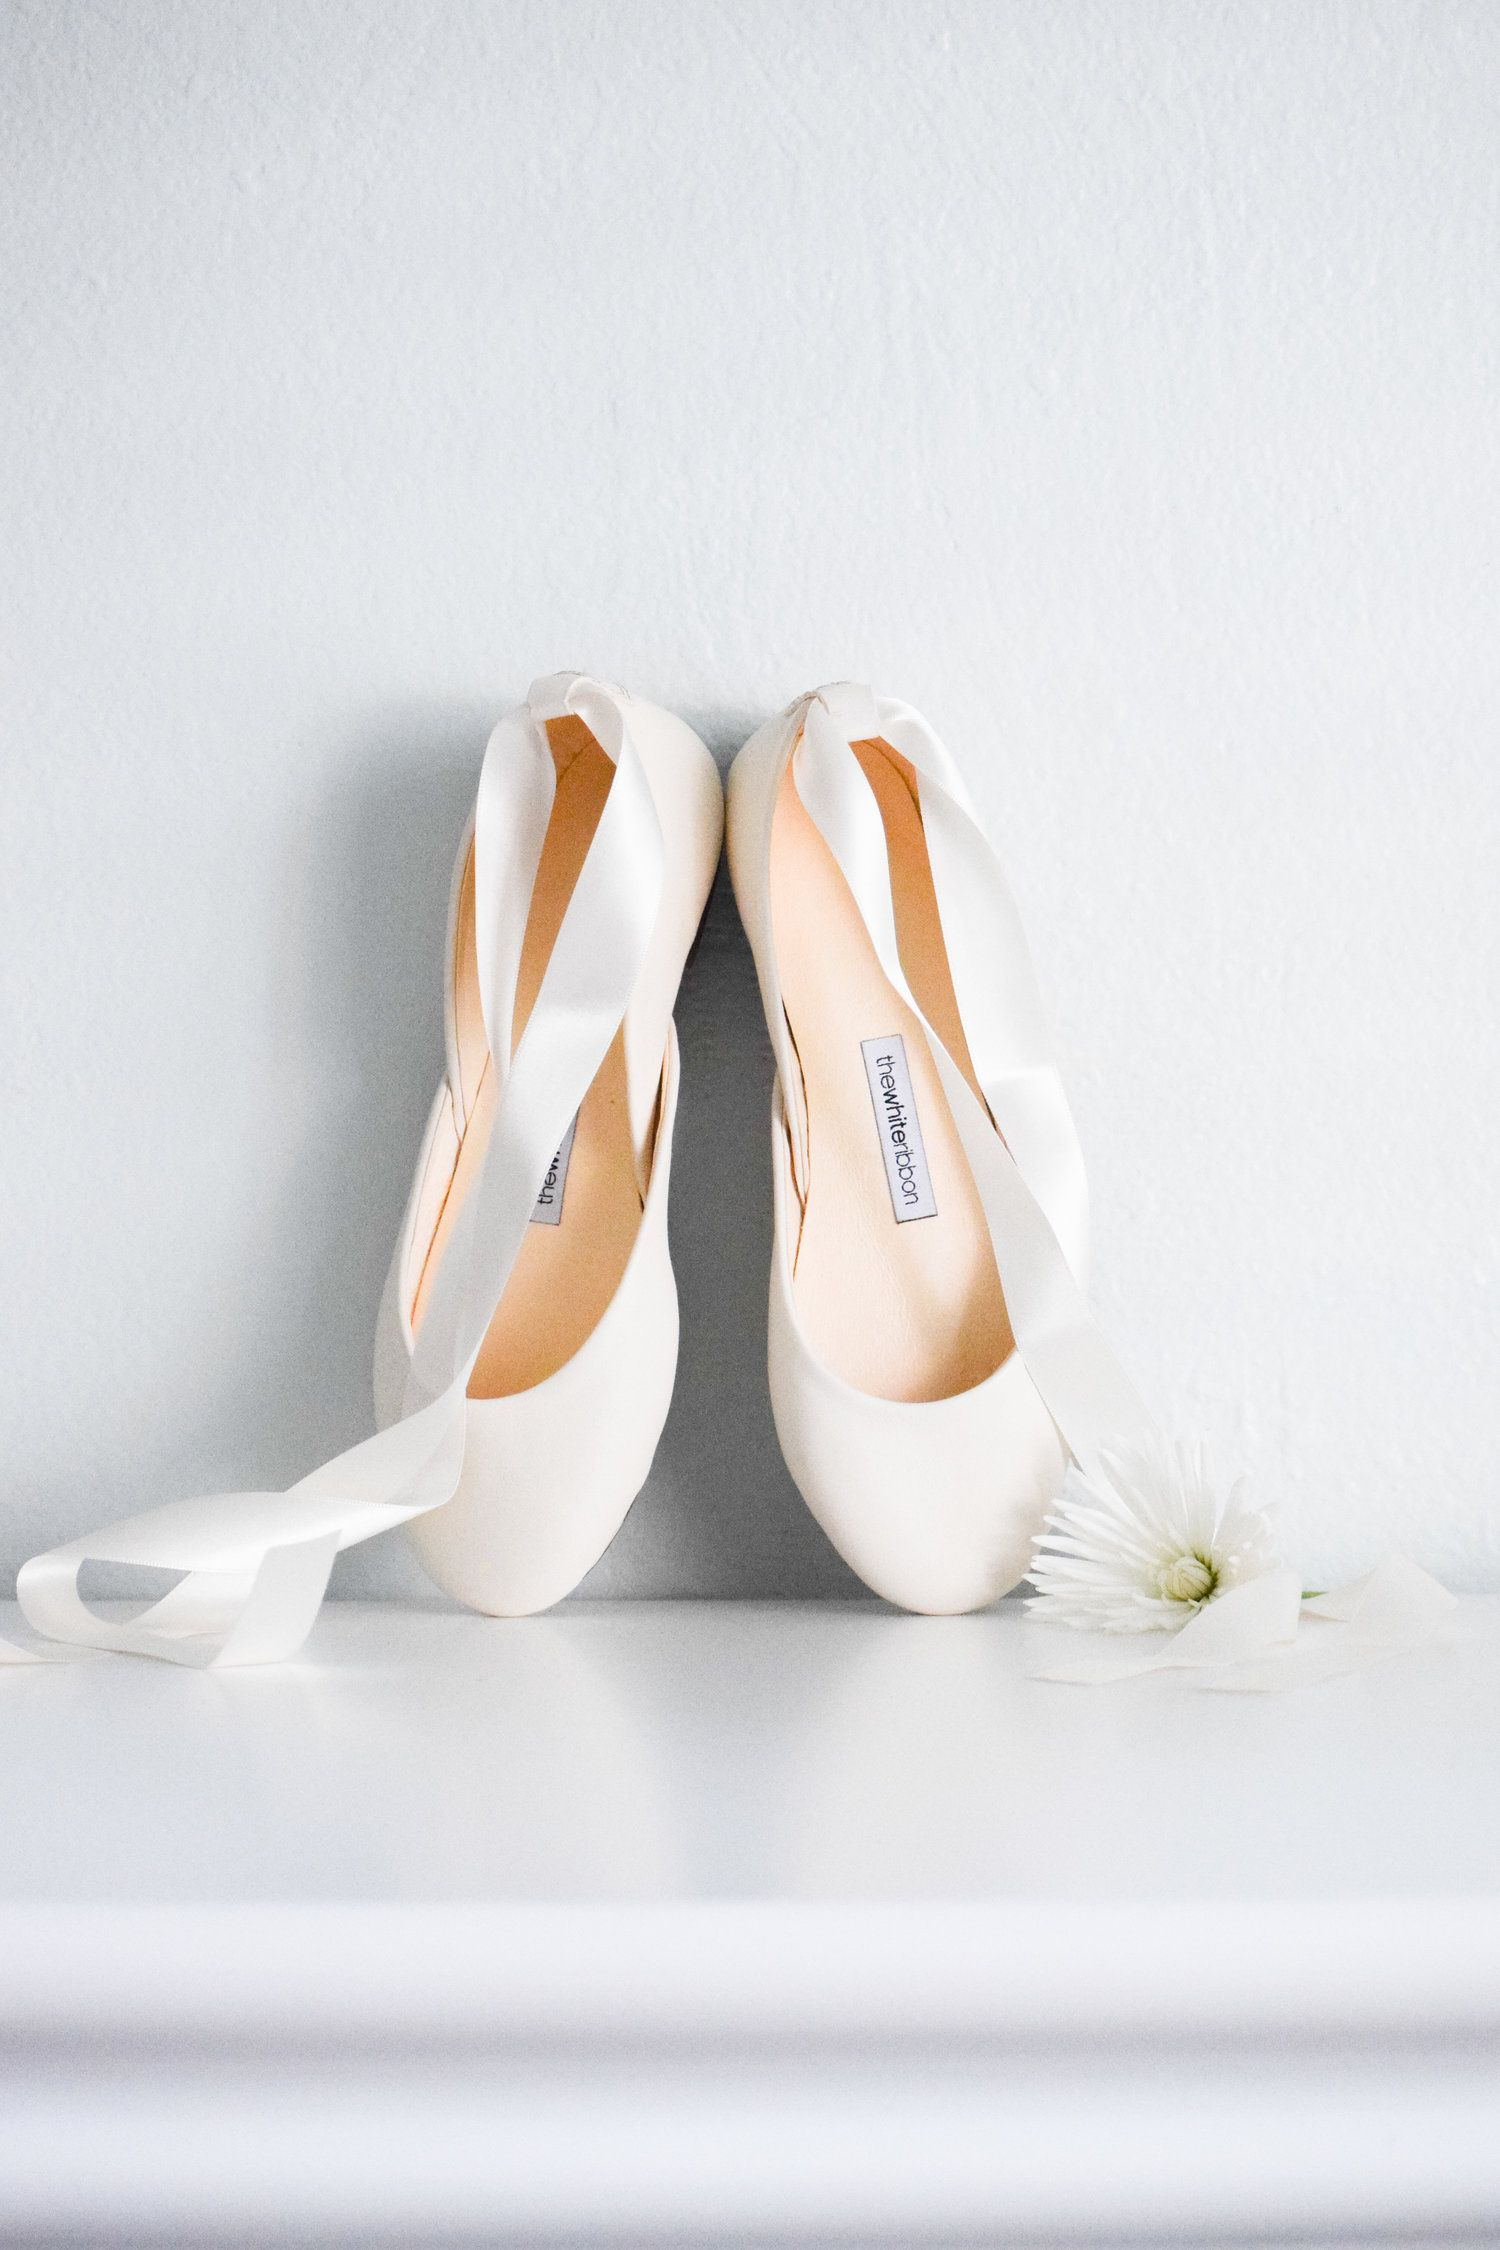 The Bridal Boutique Bridal Ballet Flats By The White Ribbon The Overwhelmed Bride Wedding Blog Socal Wedding Planner Bridal Ballet Flats Bride Shoes Flats Bride Shoes